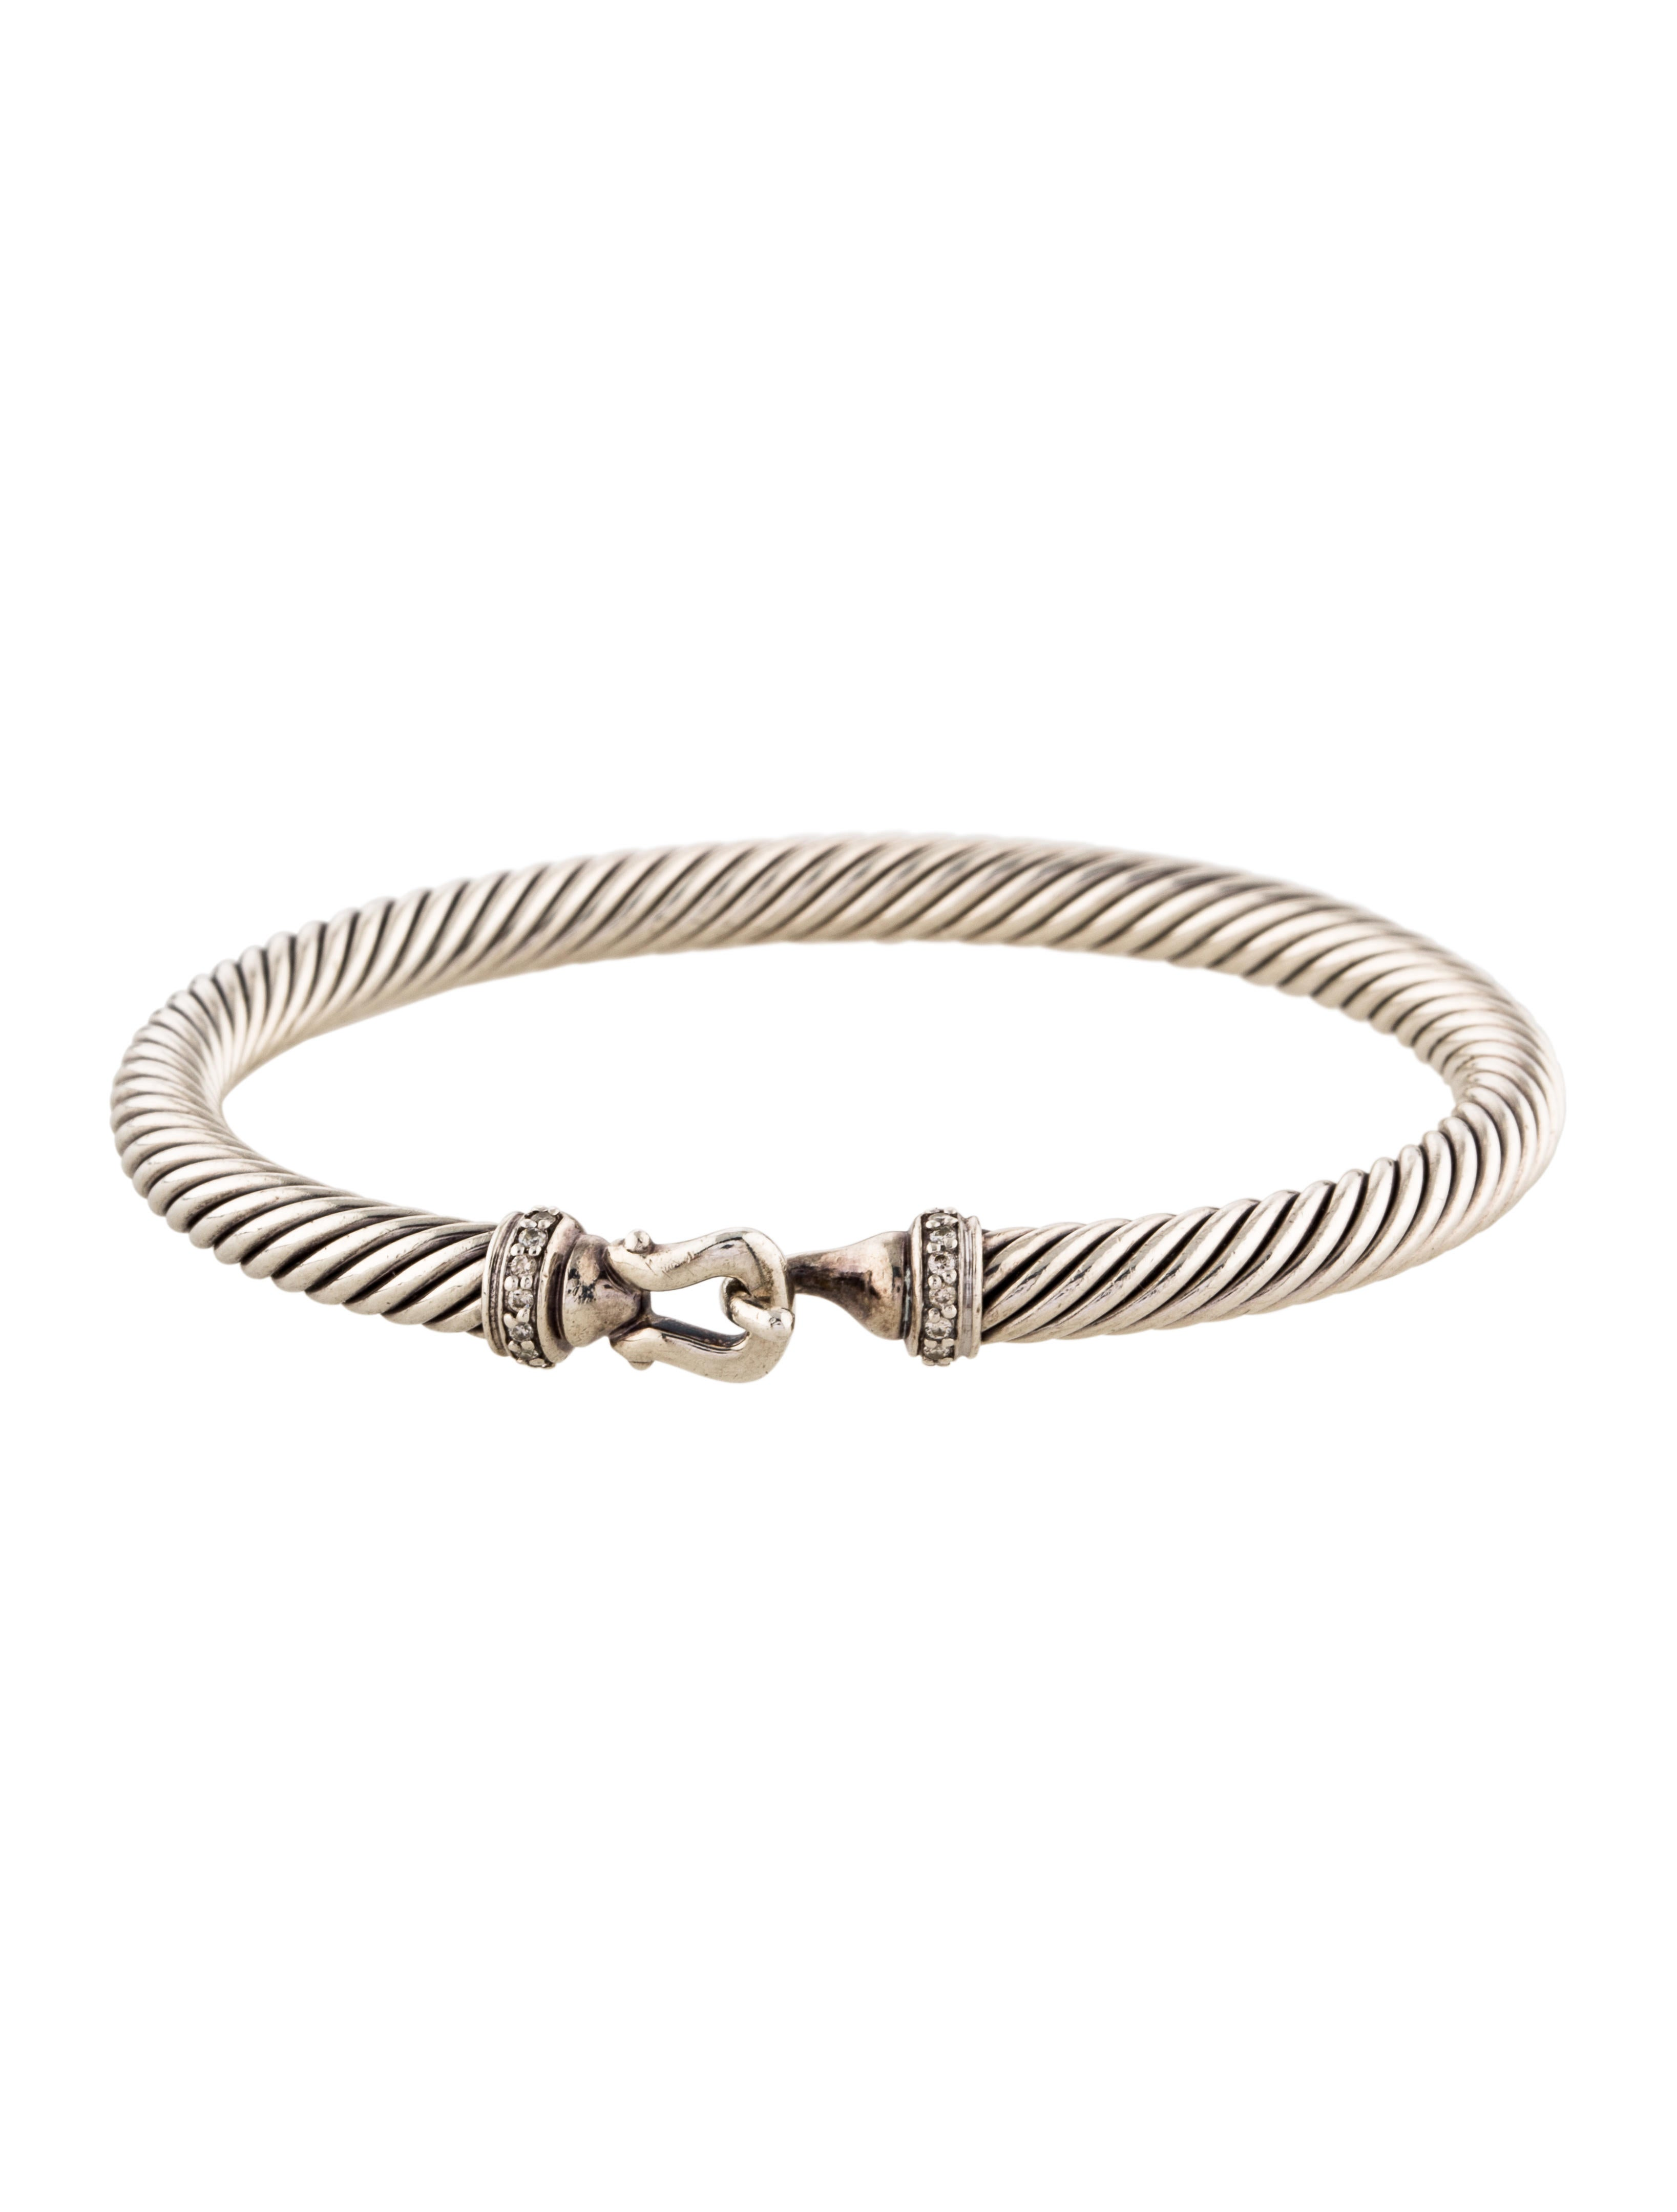 David yurman diamond cable buckle bangle bracelet for David yurman inspired bracelet cable